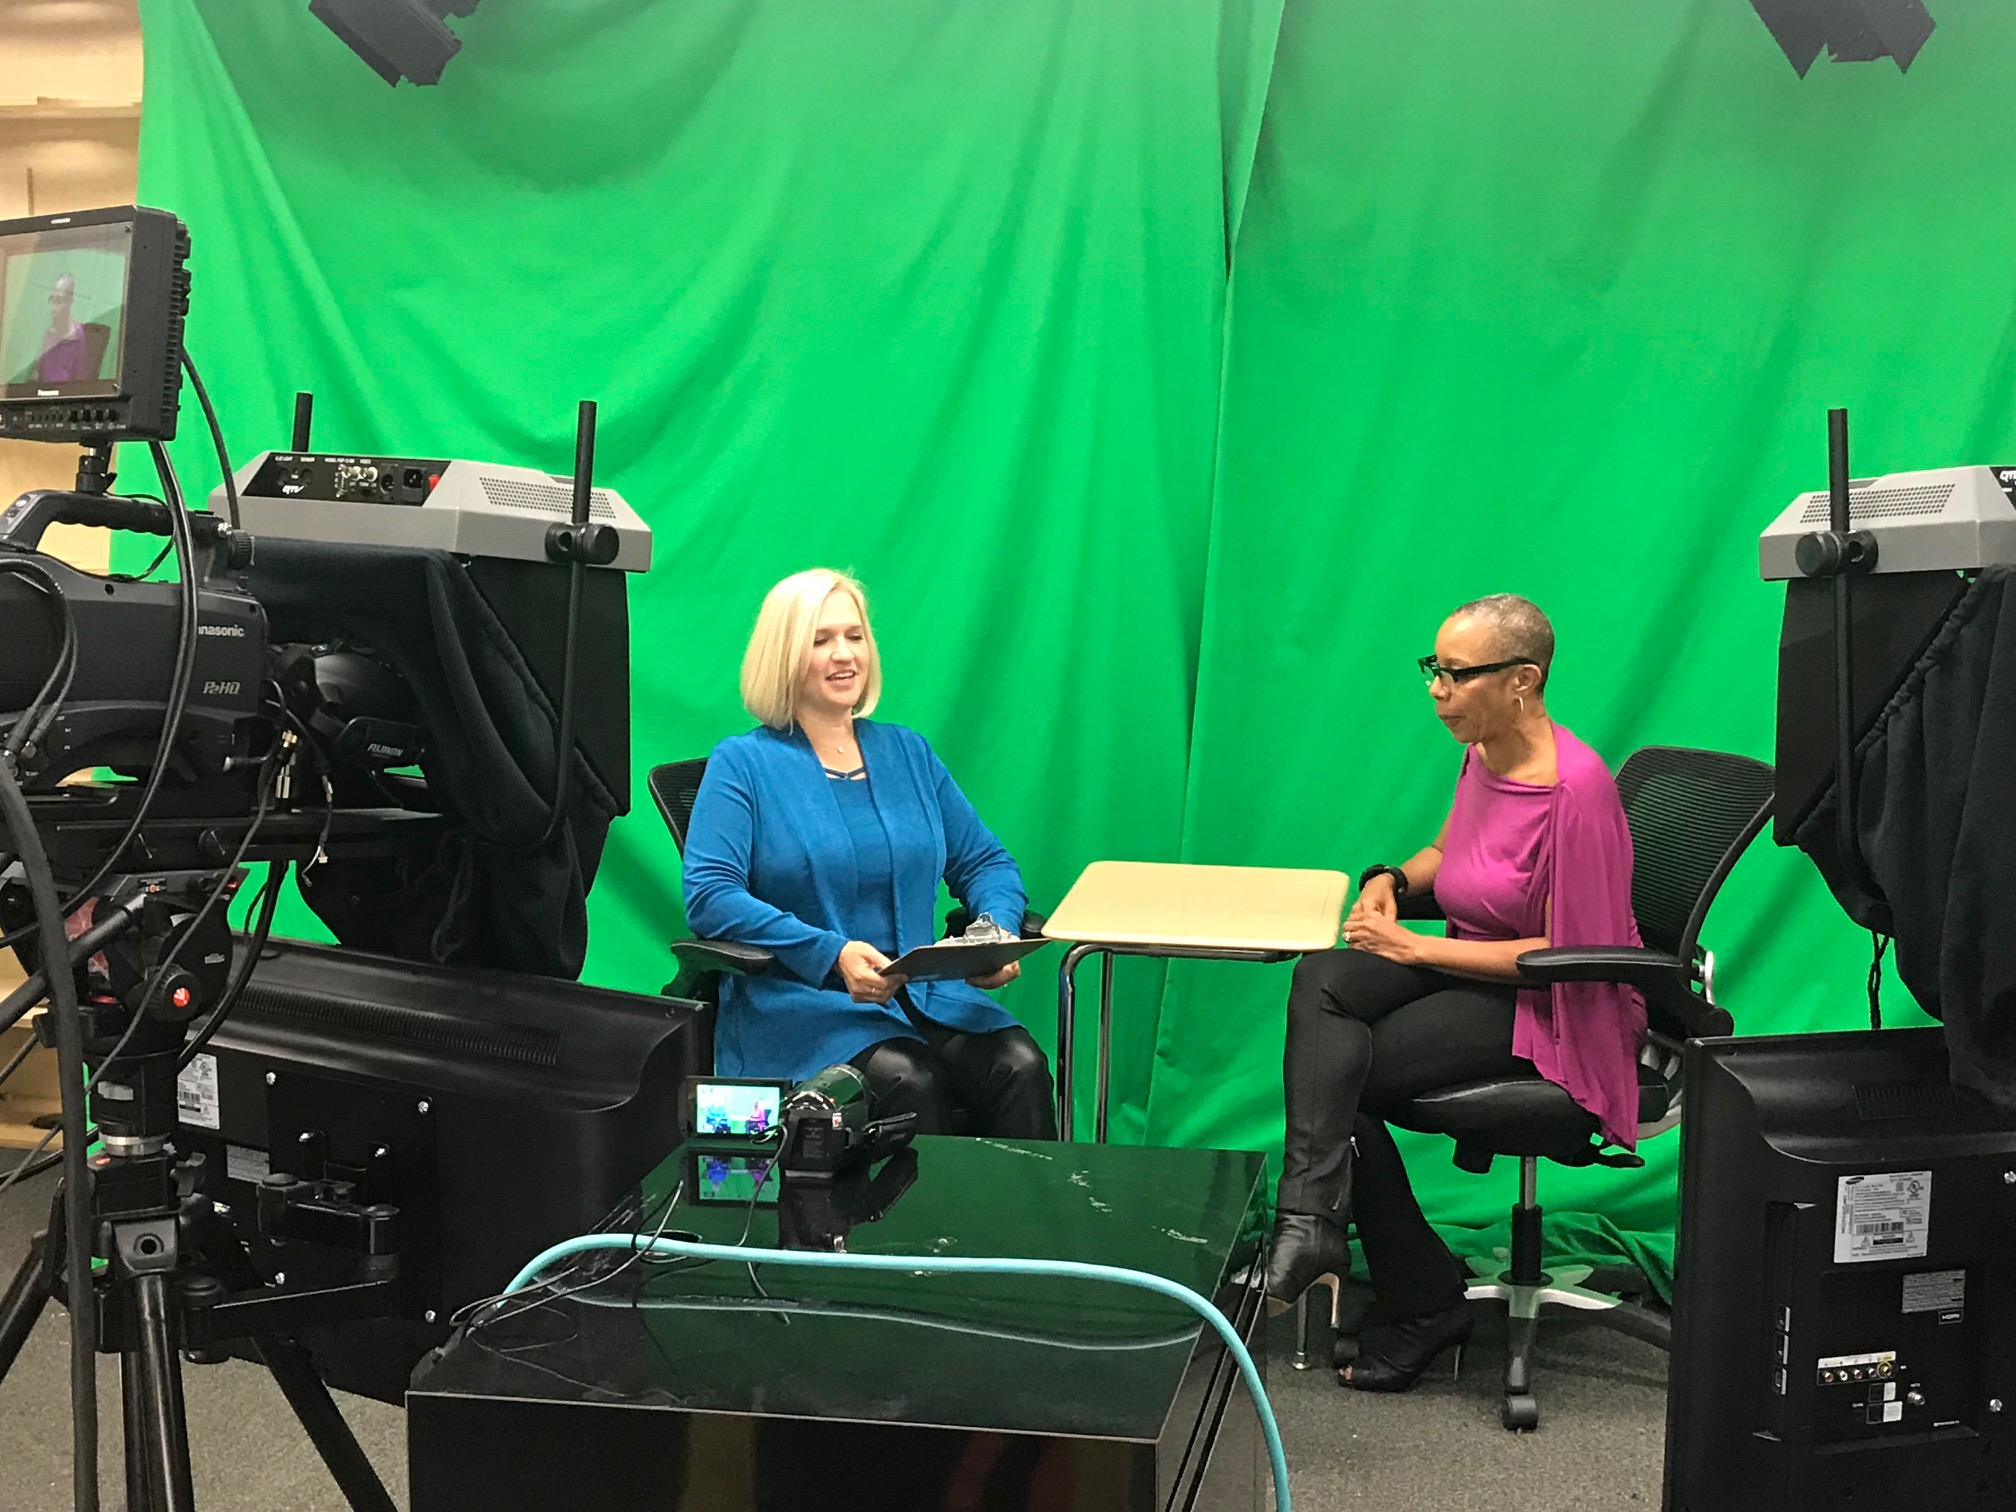 Career Corner - Career Corner is a talk show hosted by Heather Swift. She and her guests discuss career options at every stage of a person's career. Heather Swift is an SVP for RiseSmart, a Talent Mobility firm. She has over 20 years in partnering with HR and helping people excel in their careers, reinventing themselves and bringing purpose into work. Heather loves to share career success stories and help people navigate the ever-changing world of work.